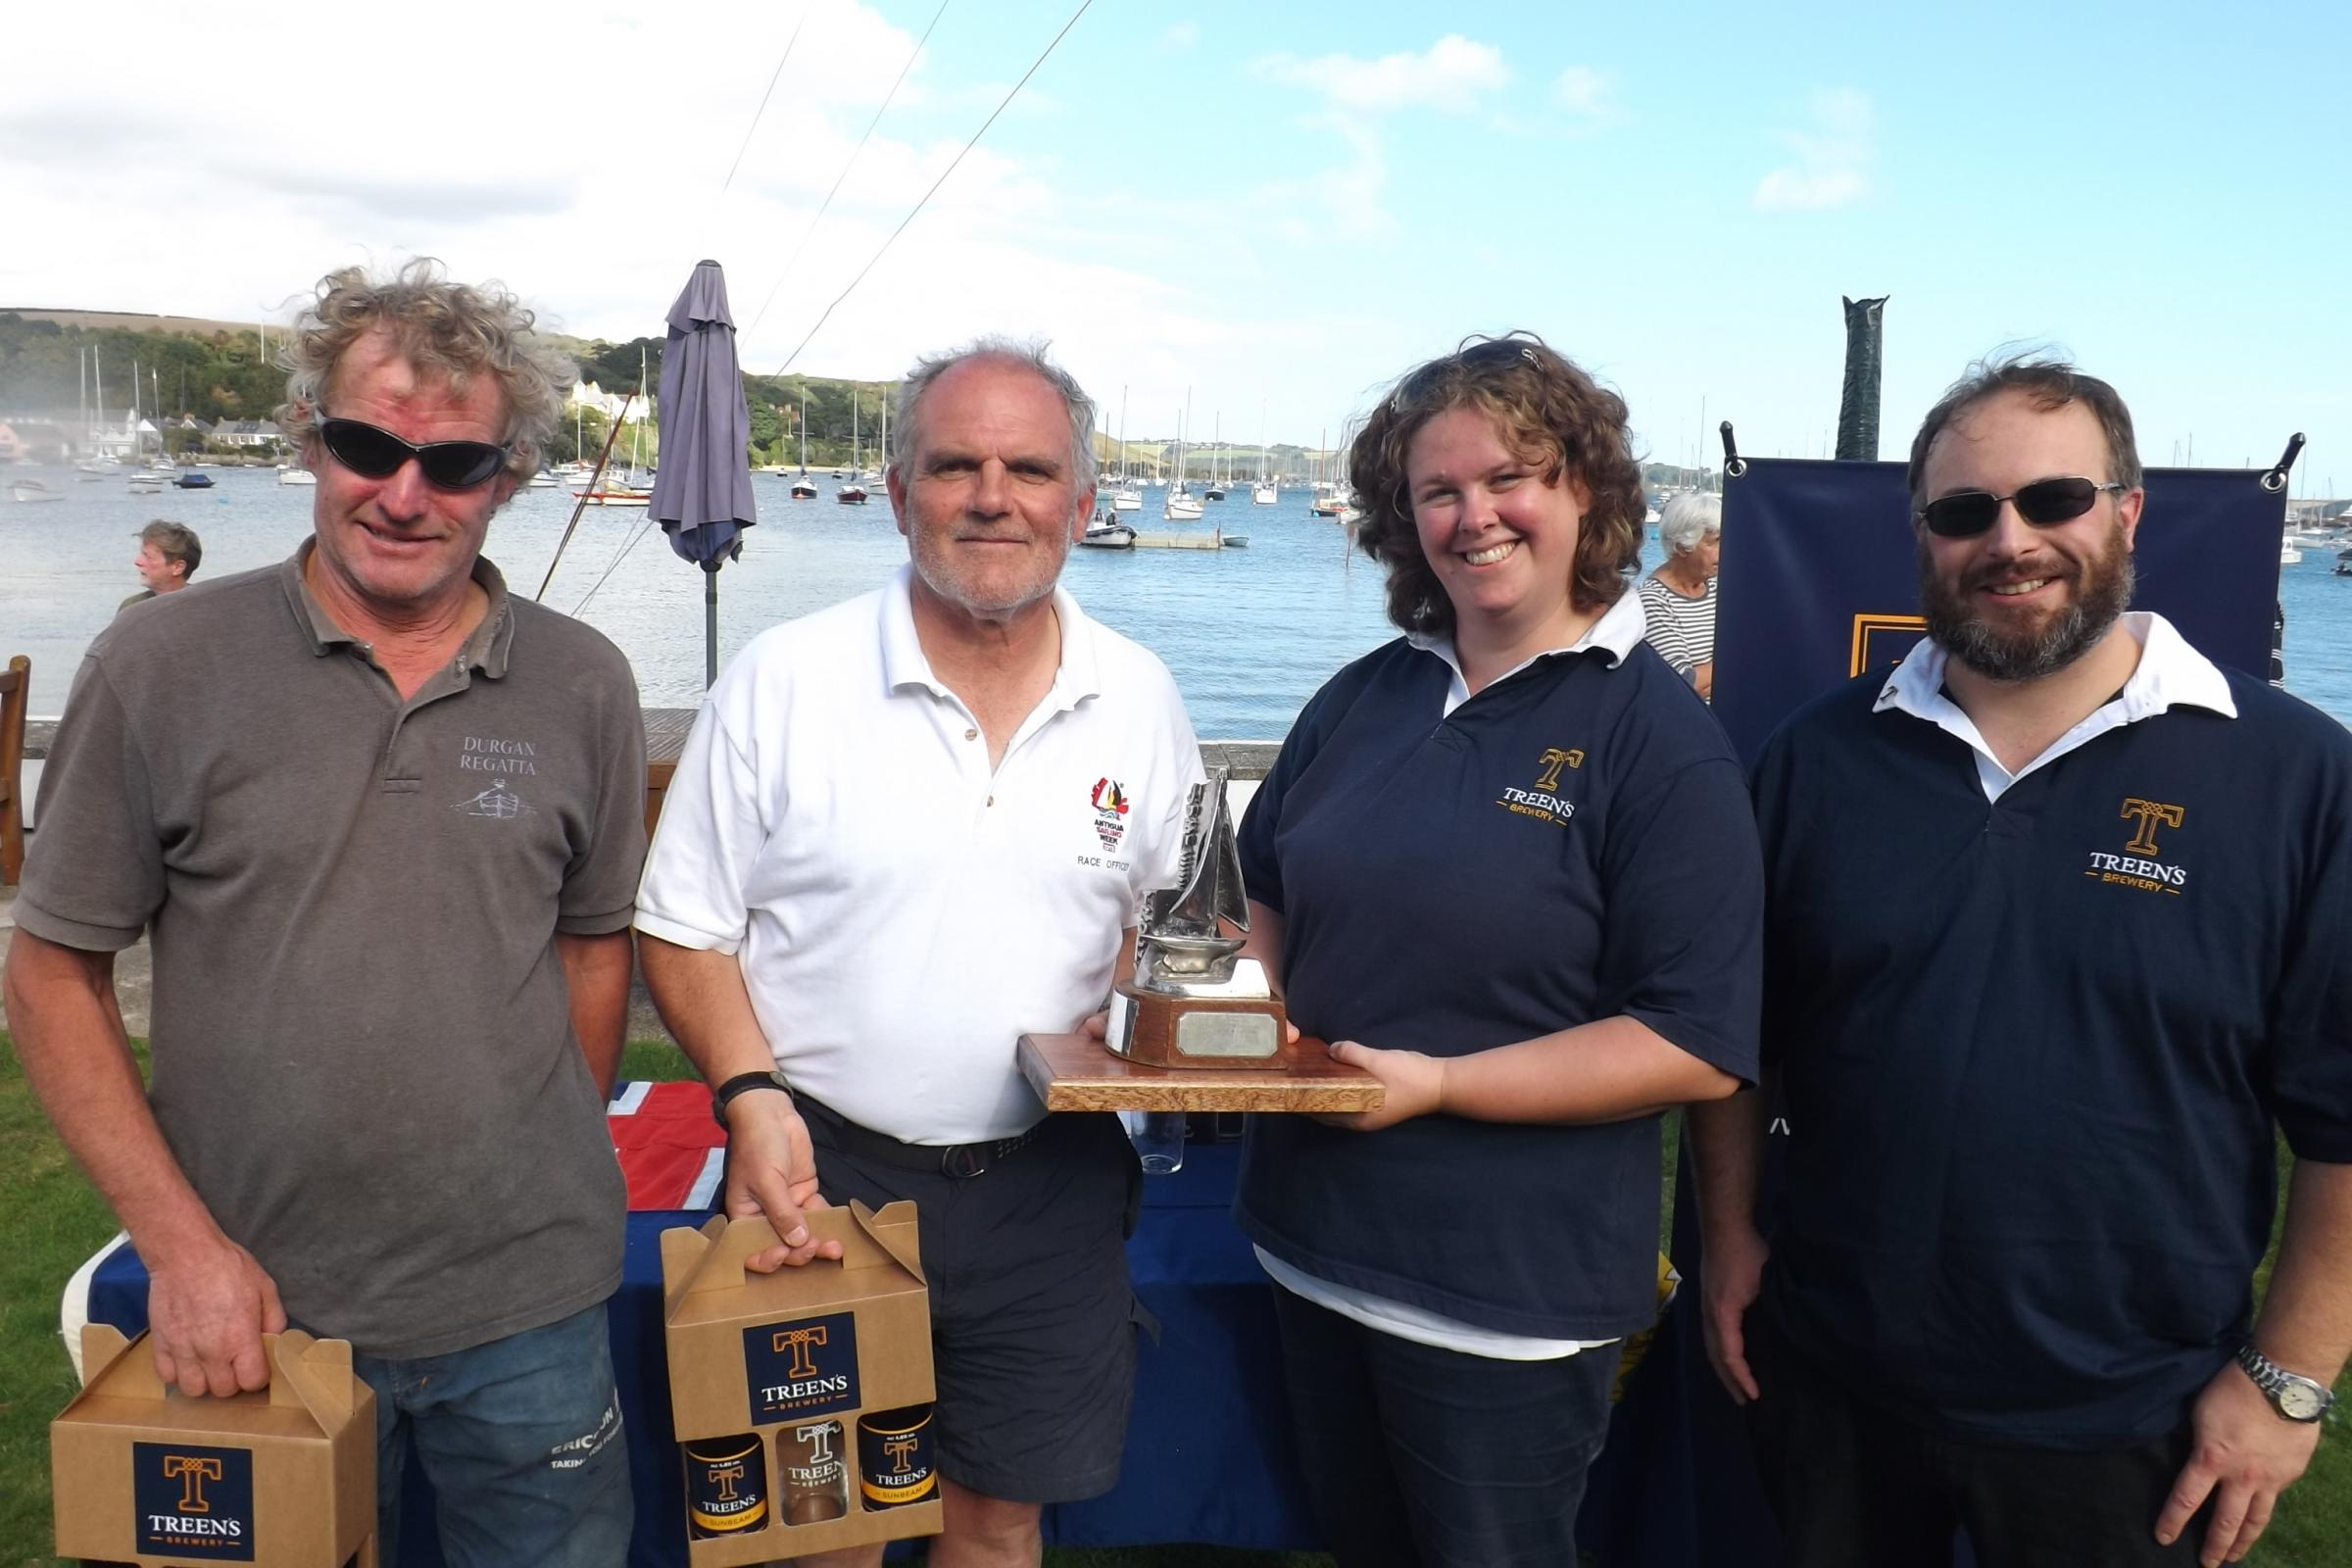 Tim Bailey (left) and Neil Andrew receive the championship trophy and prizes from Sarah and Simon Treen.